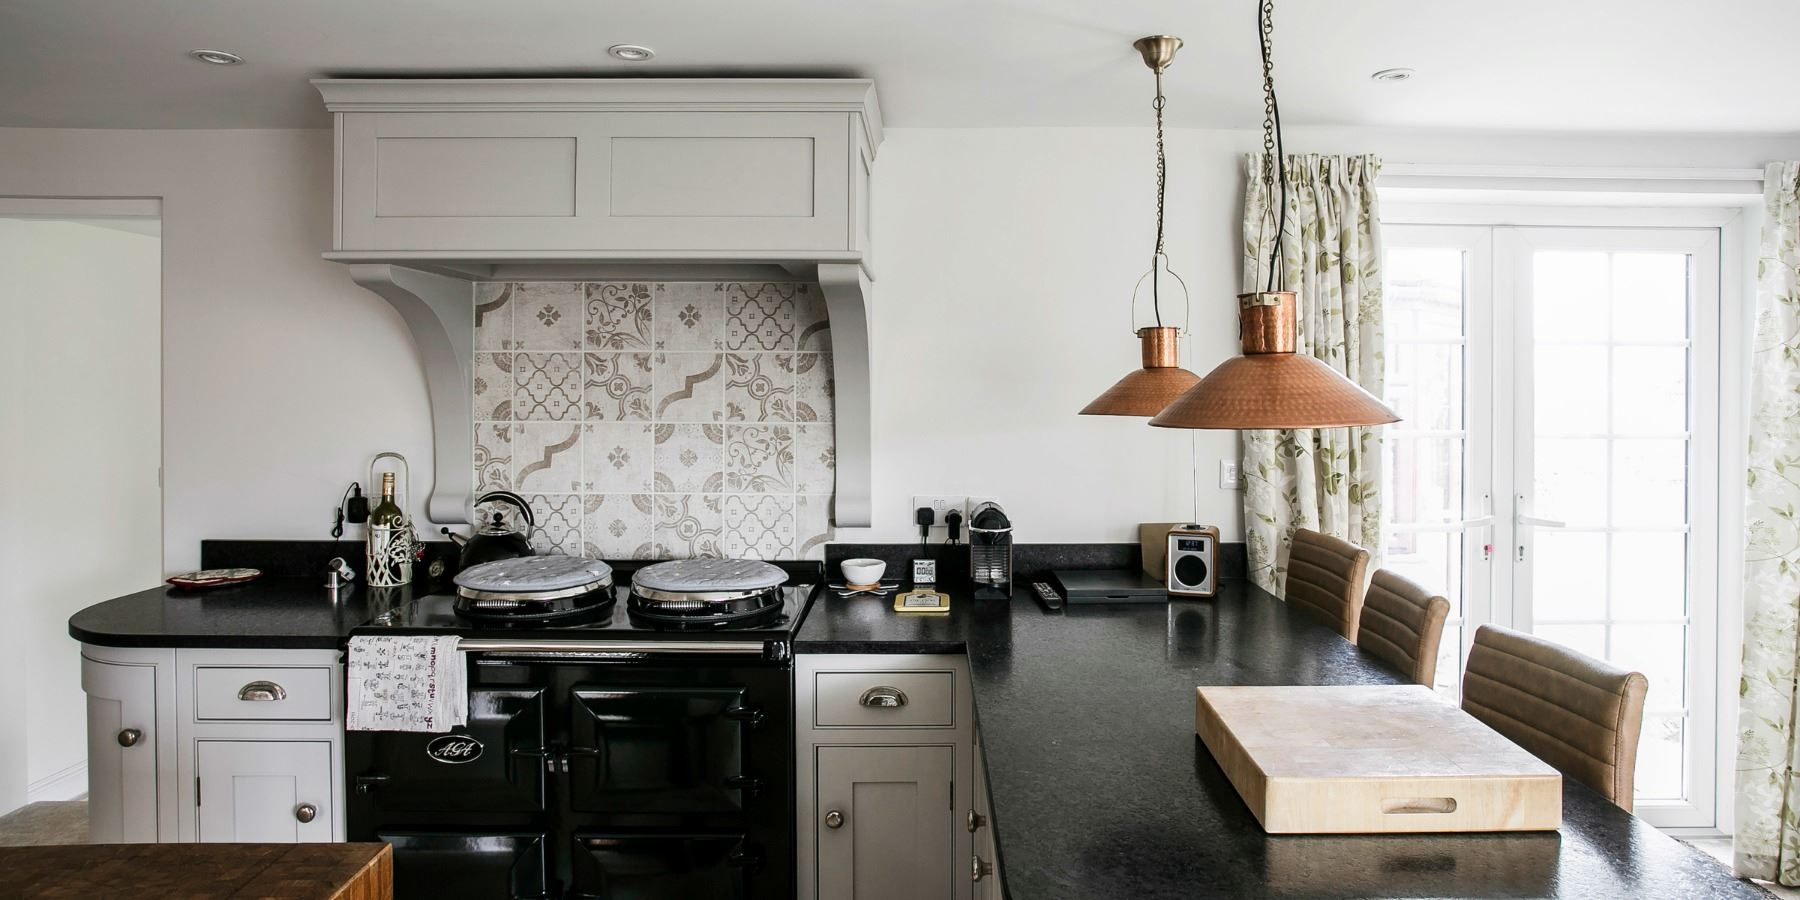 Bespoke handmade country kitchens kent burlanes - Signature interiors and design kent ...